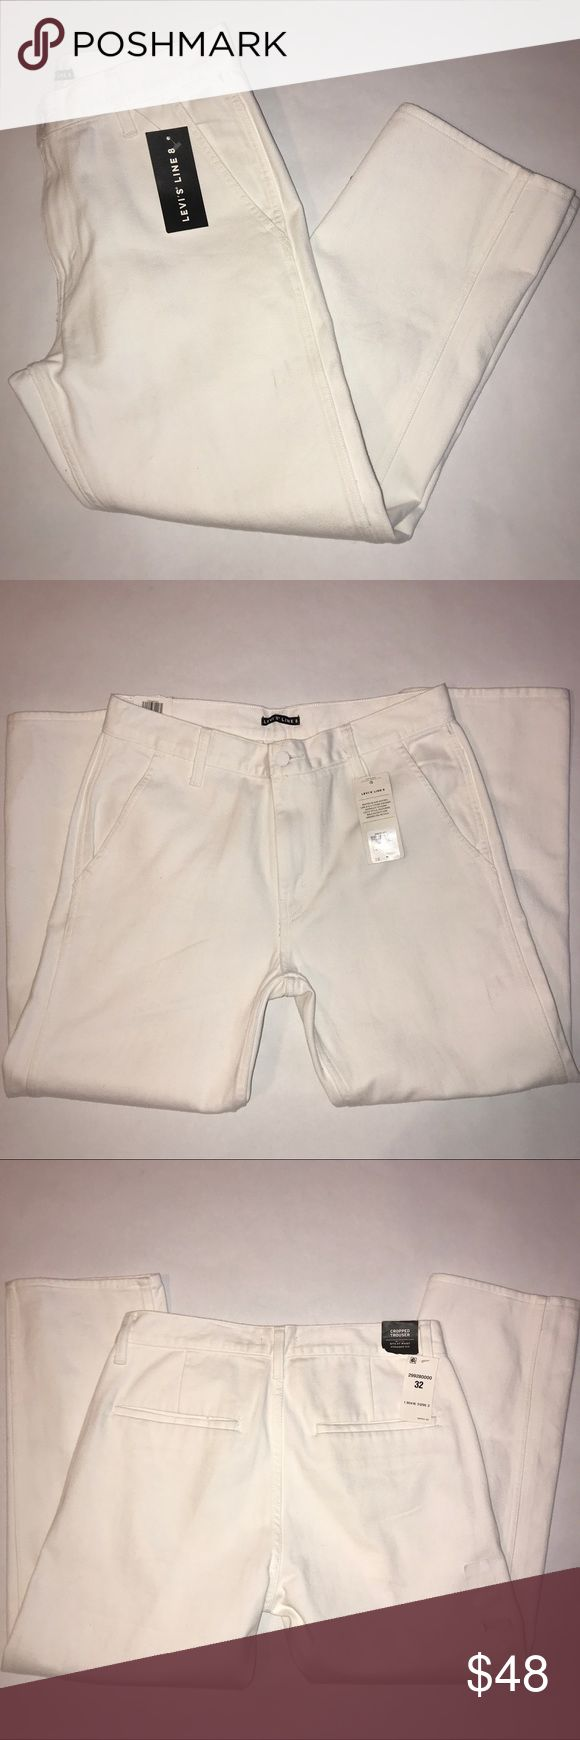 """Levi's Line 8 women's cropped trouser size 32 NWT Women's Levi's line 8 cropped trousers straight fit, color is white, size 32, 2 pockets on front, and 2 on the back, NWT, measurements inseam 26"""", and rise 11"""" Levi's Pants Ankle & Cropped"""